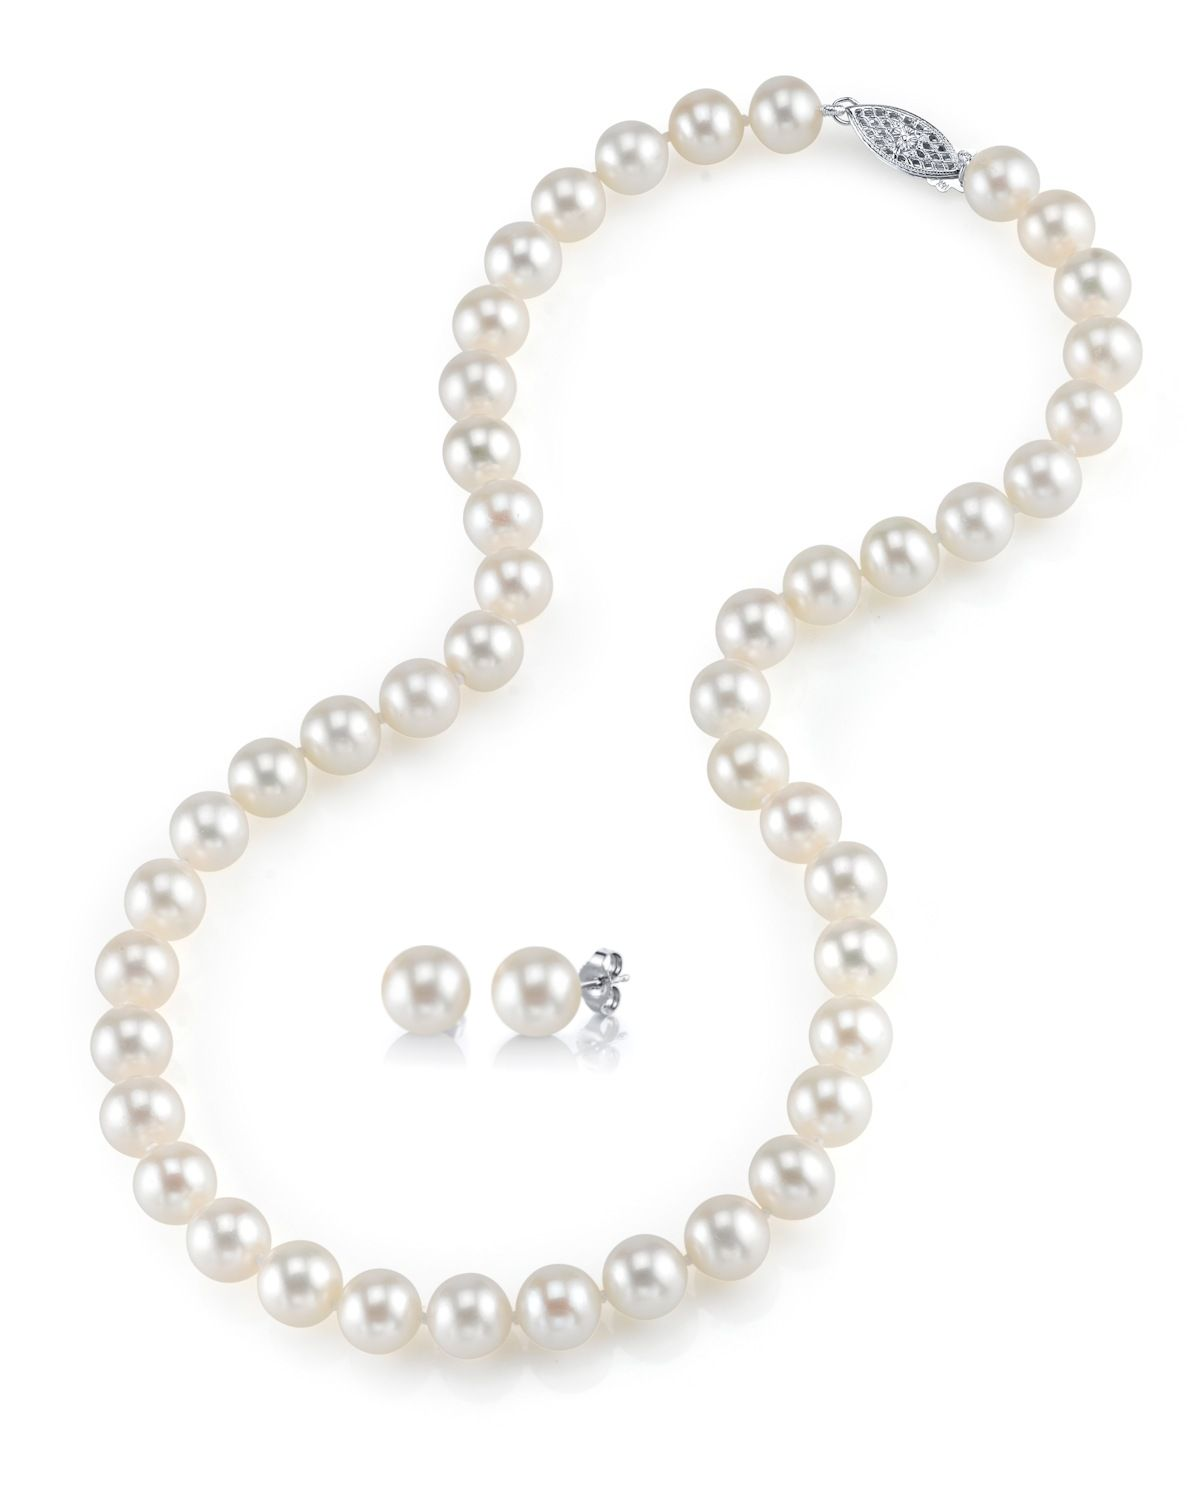 THE PEARL SOURCE 14K Gold 9-10mm AAA Quality Peach Freshwater Cultured Pearl Necklace for Women in 18 Princess Length